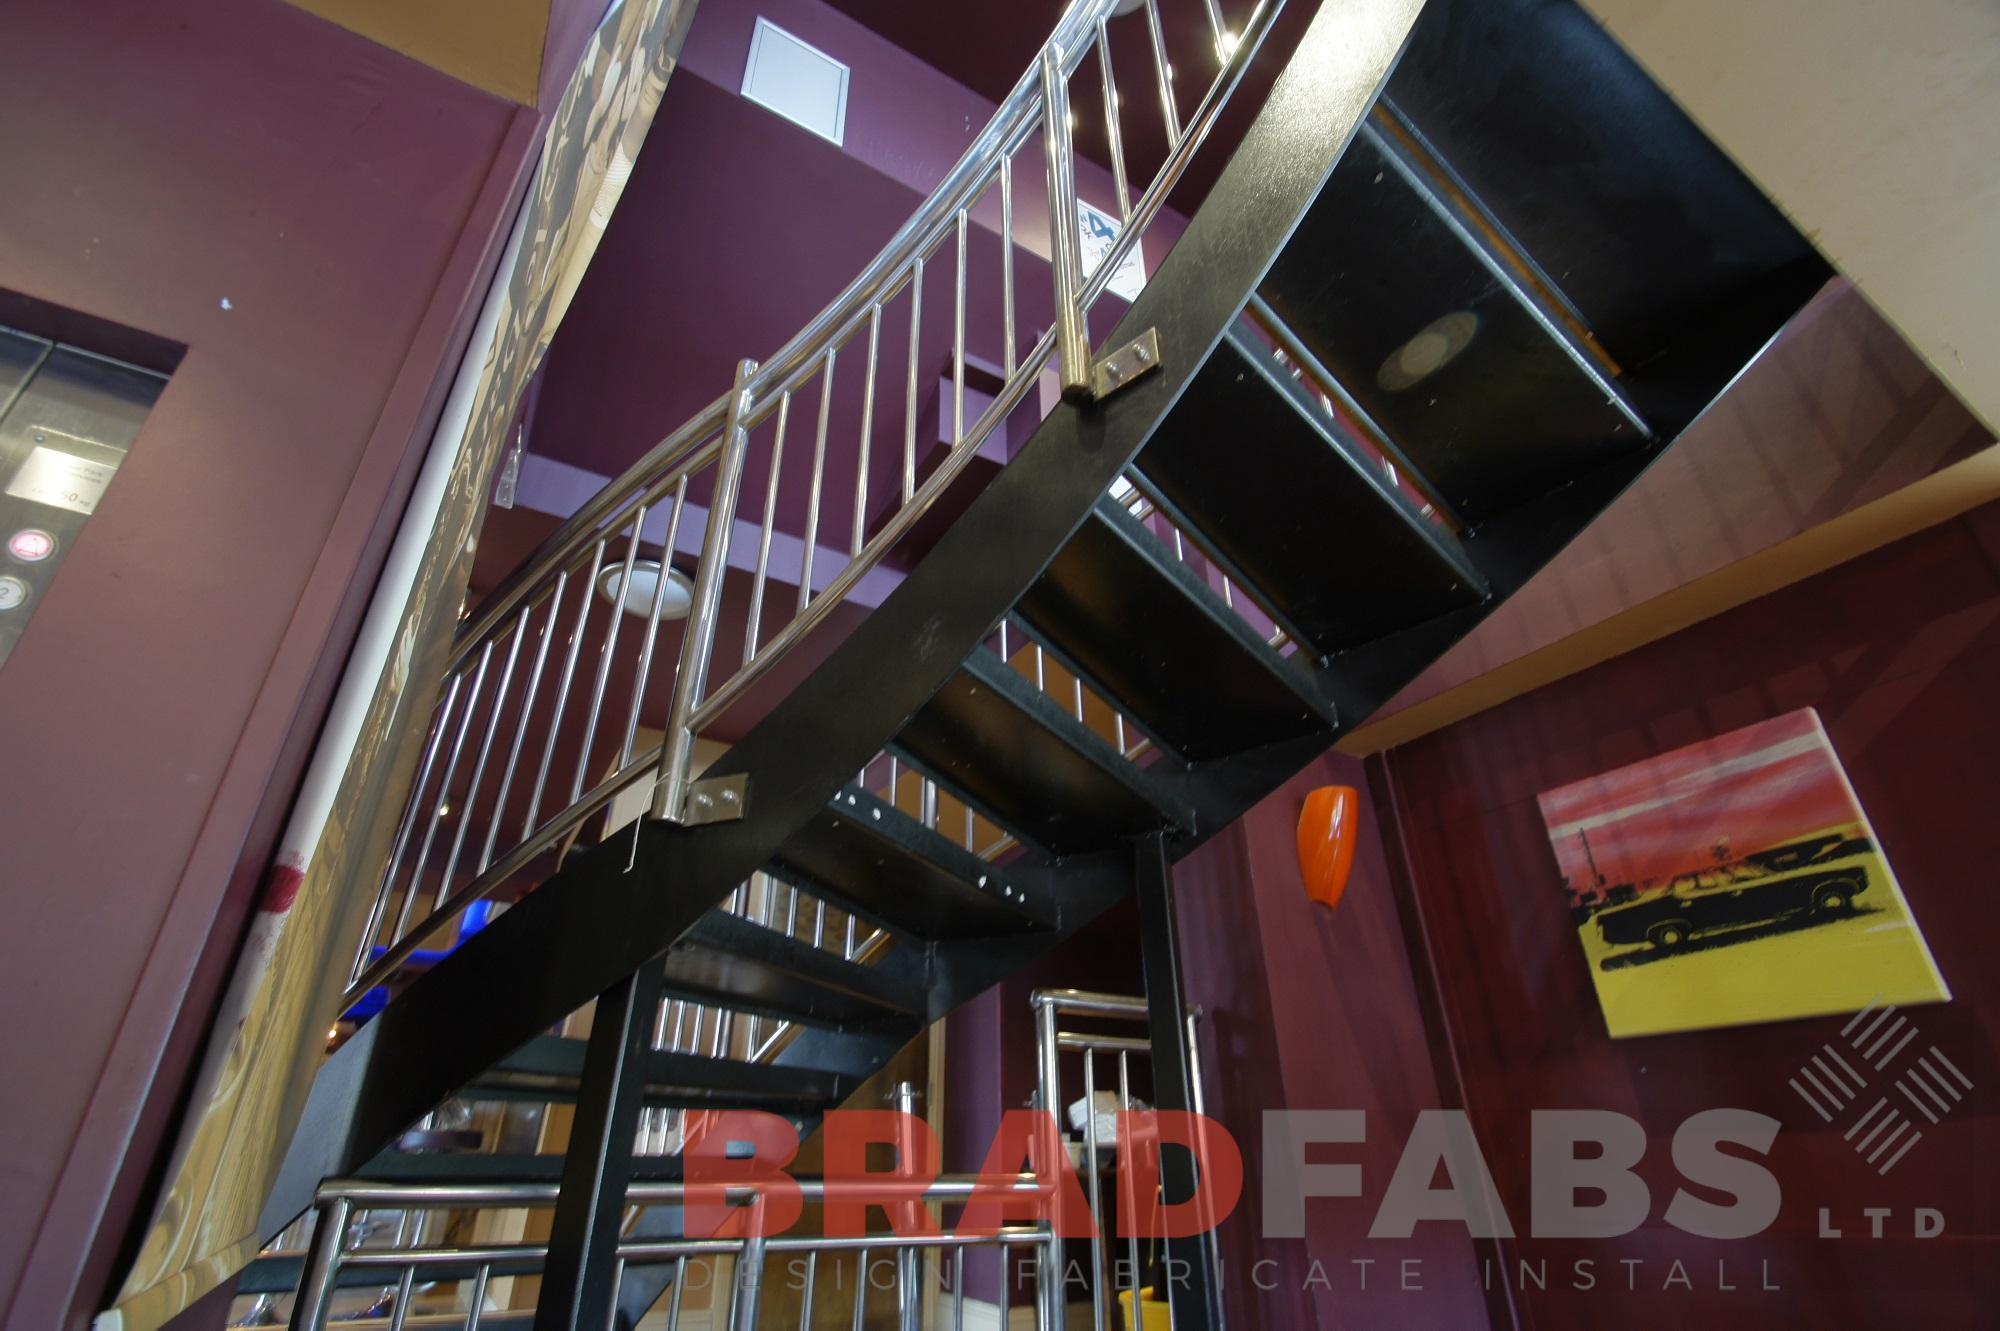 Stainless steel balustrade on helix staircase by Bradfabs